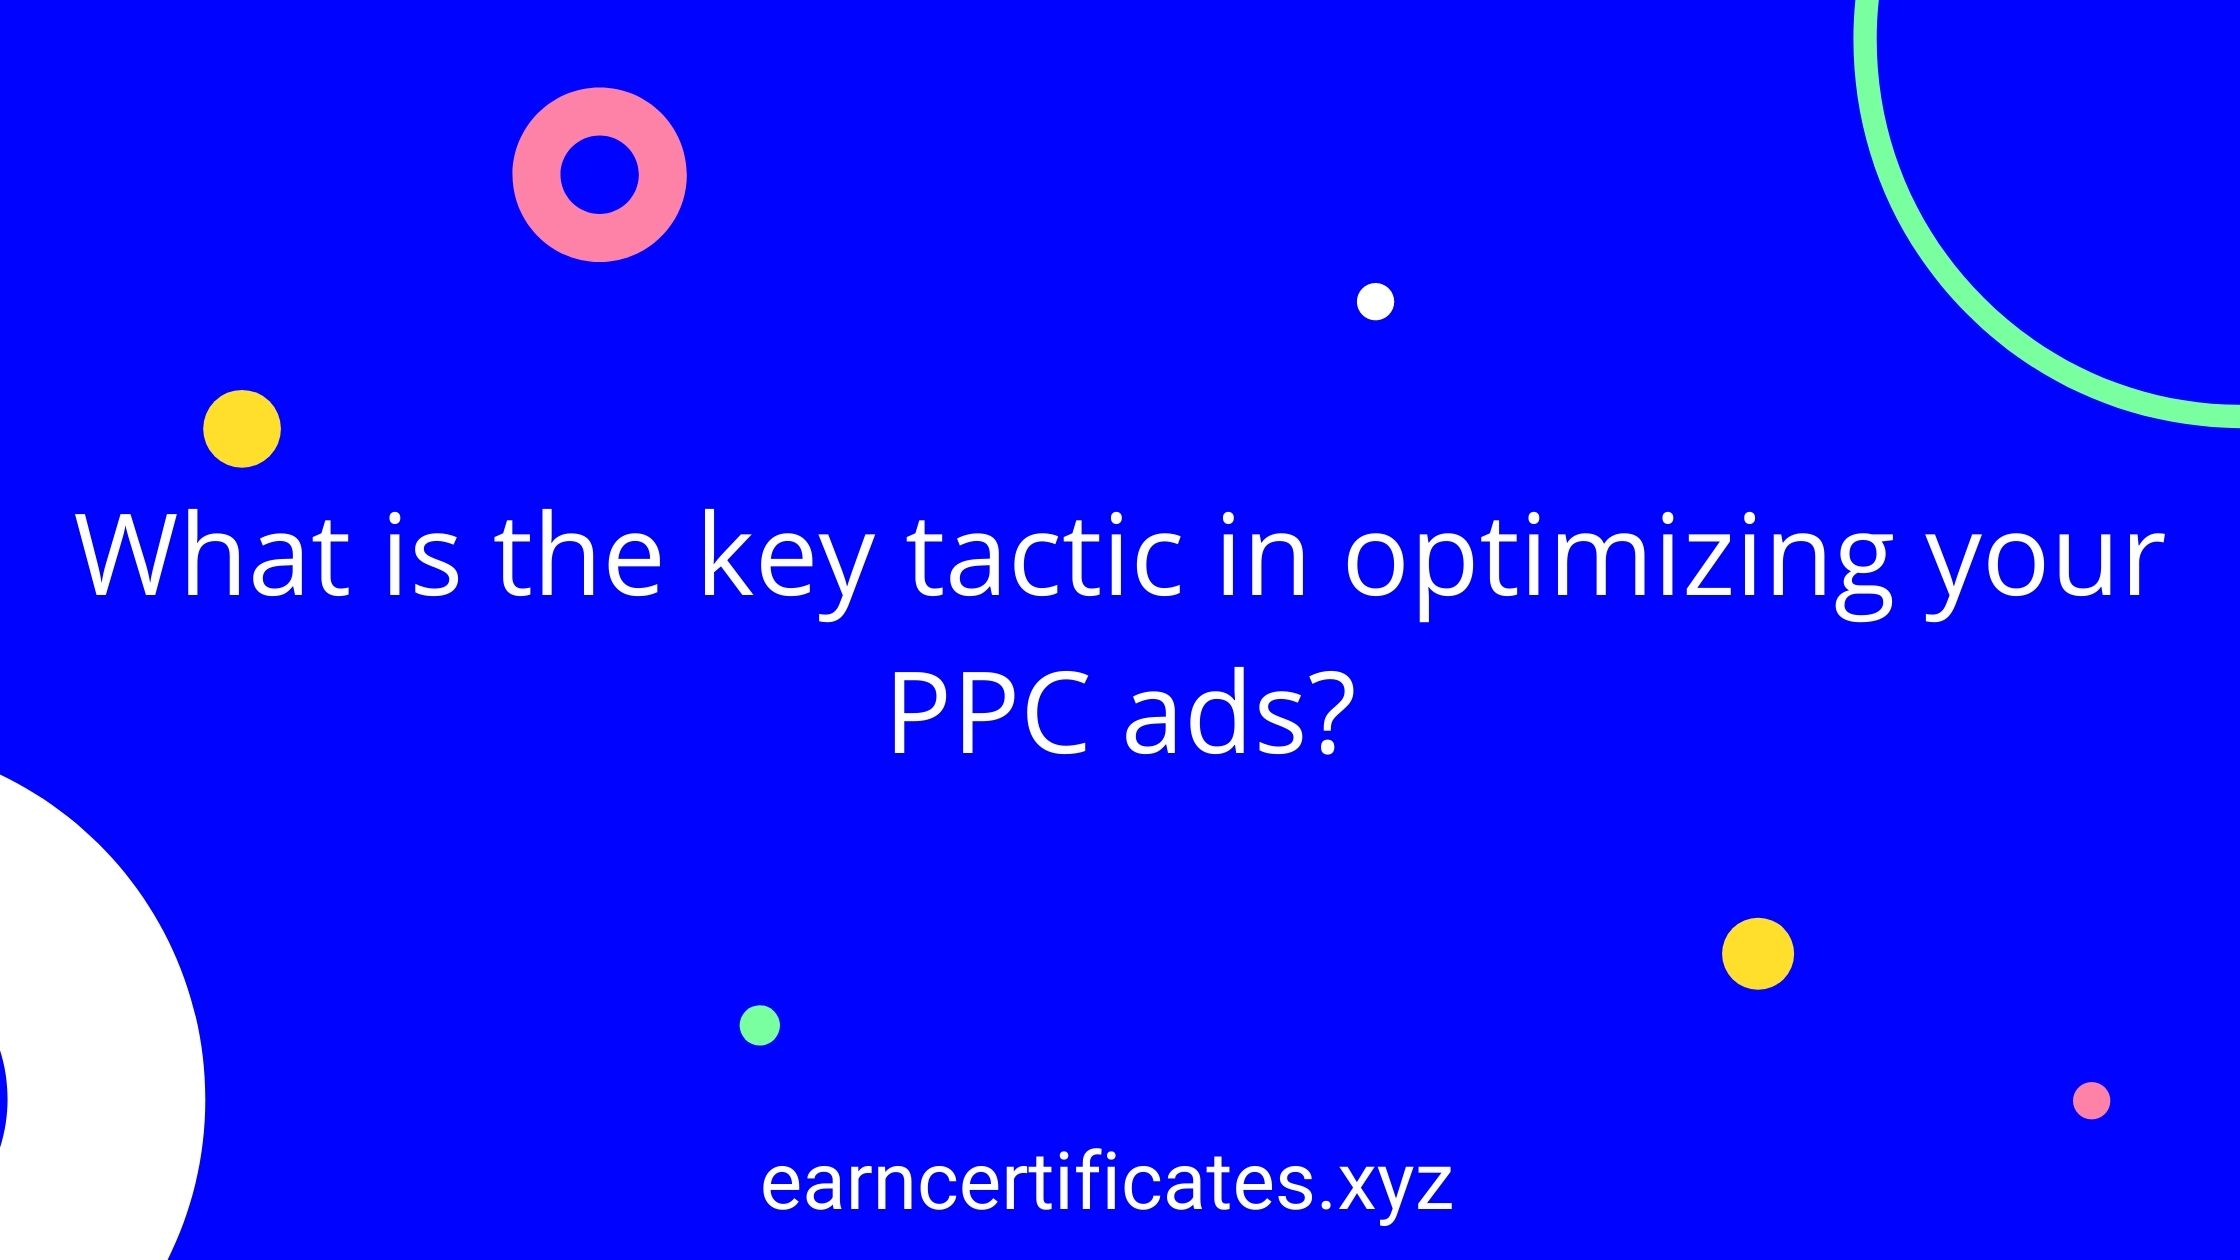 What is the key tactic in optimizing your PPC ads?